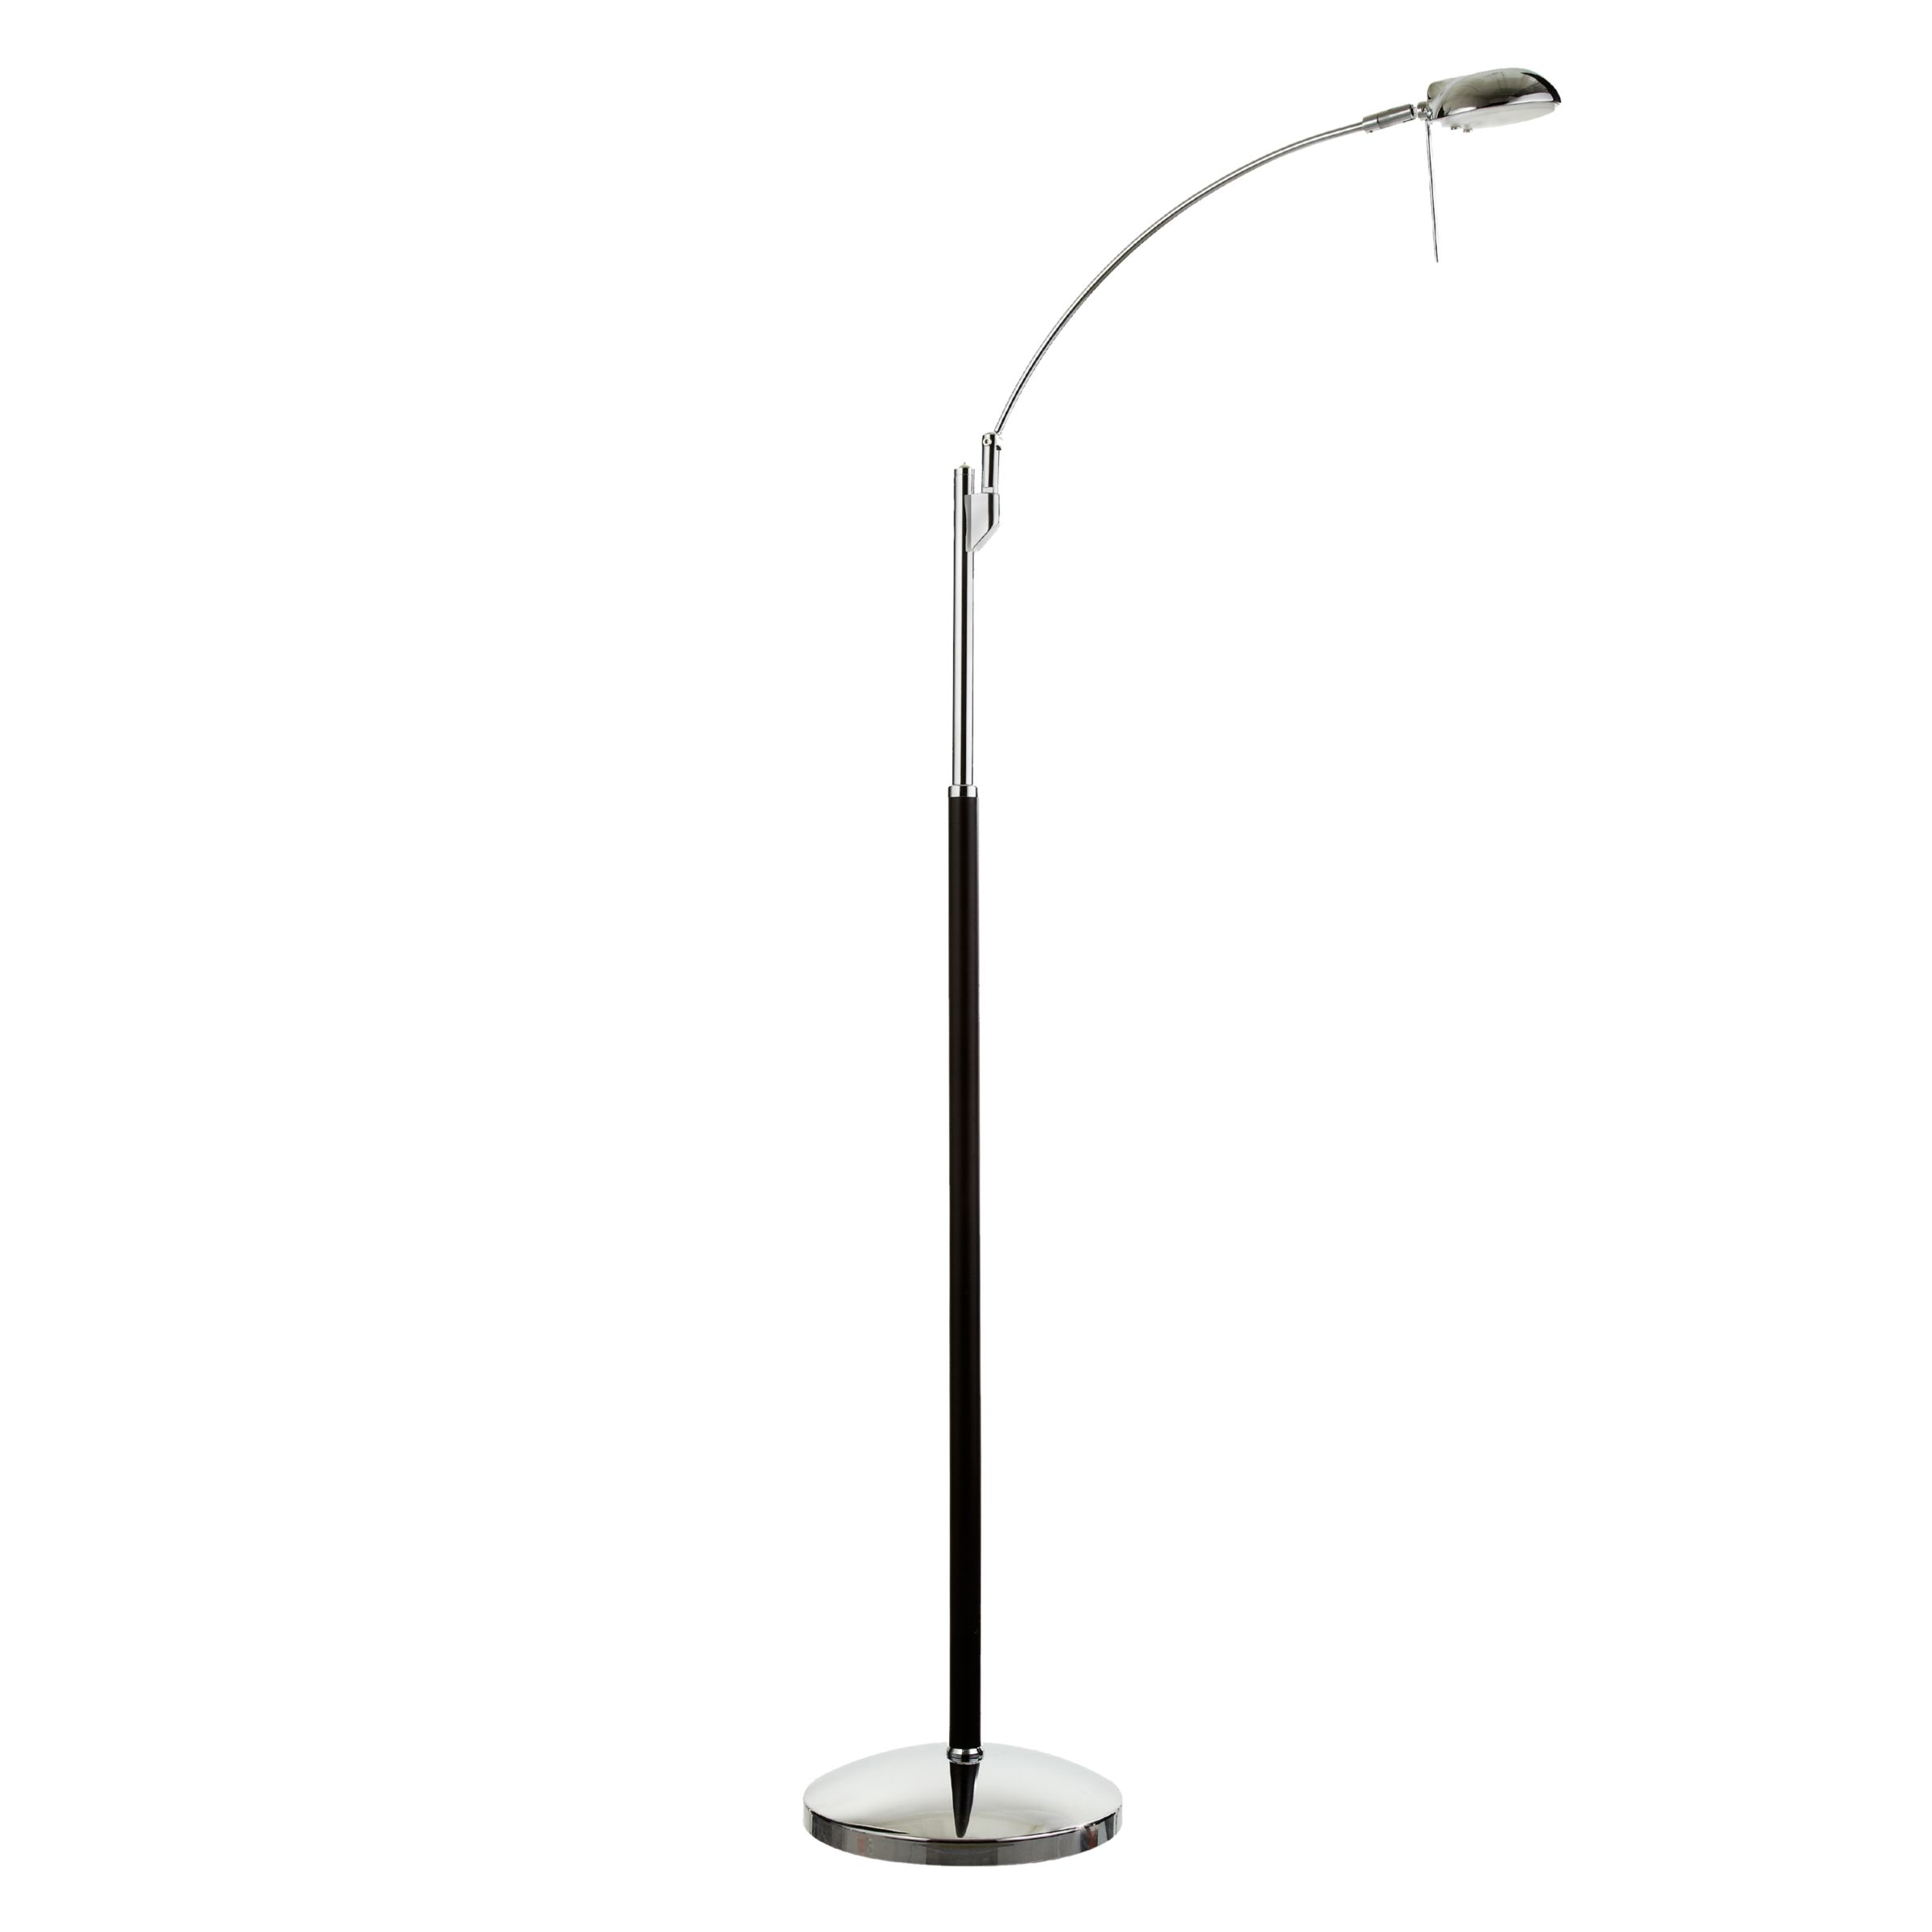 Buy cheap standing lamp compare lighting prices for best for John lewis floor lamp reading